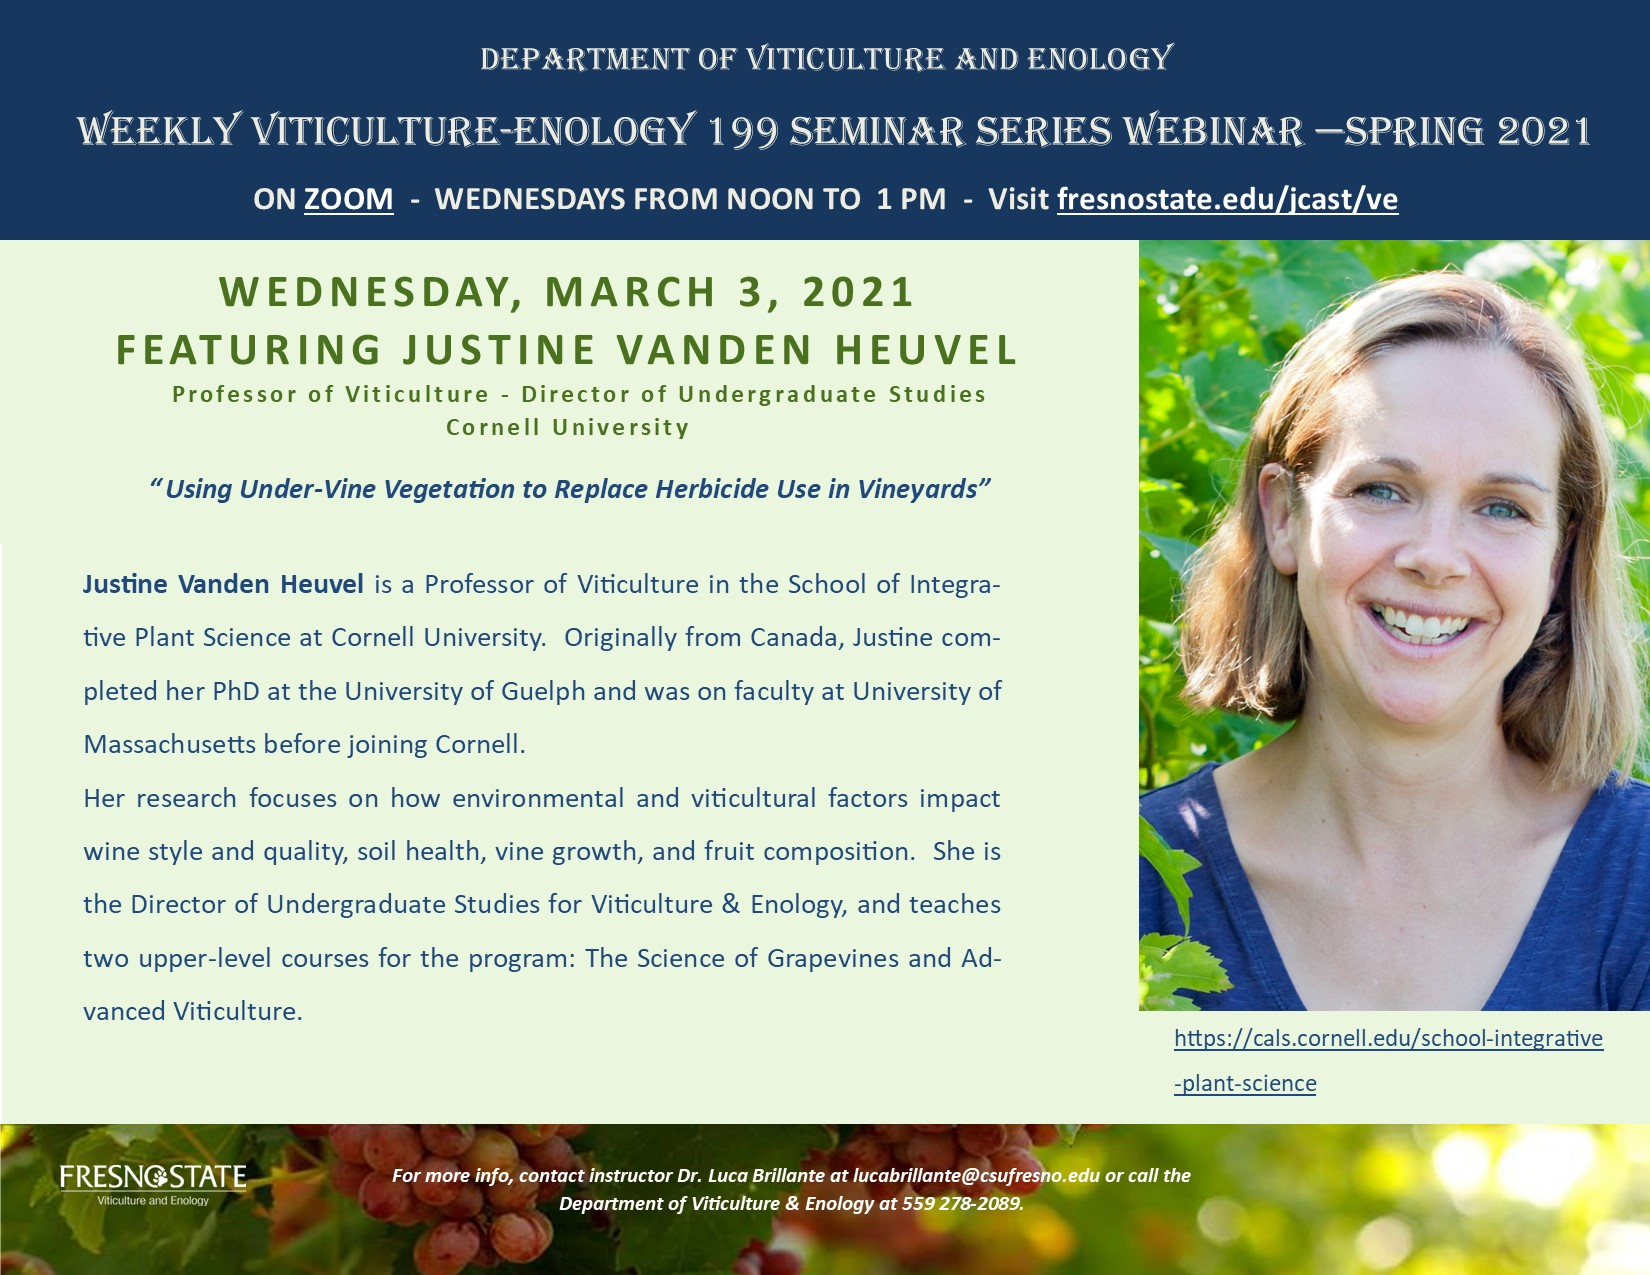 Dr. Justine Vanden Heuvel Seminar Series March 3